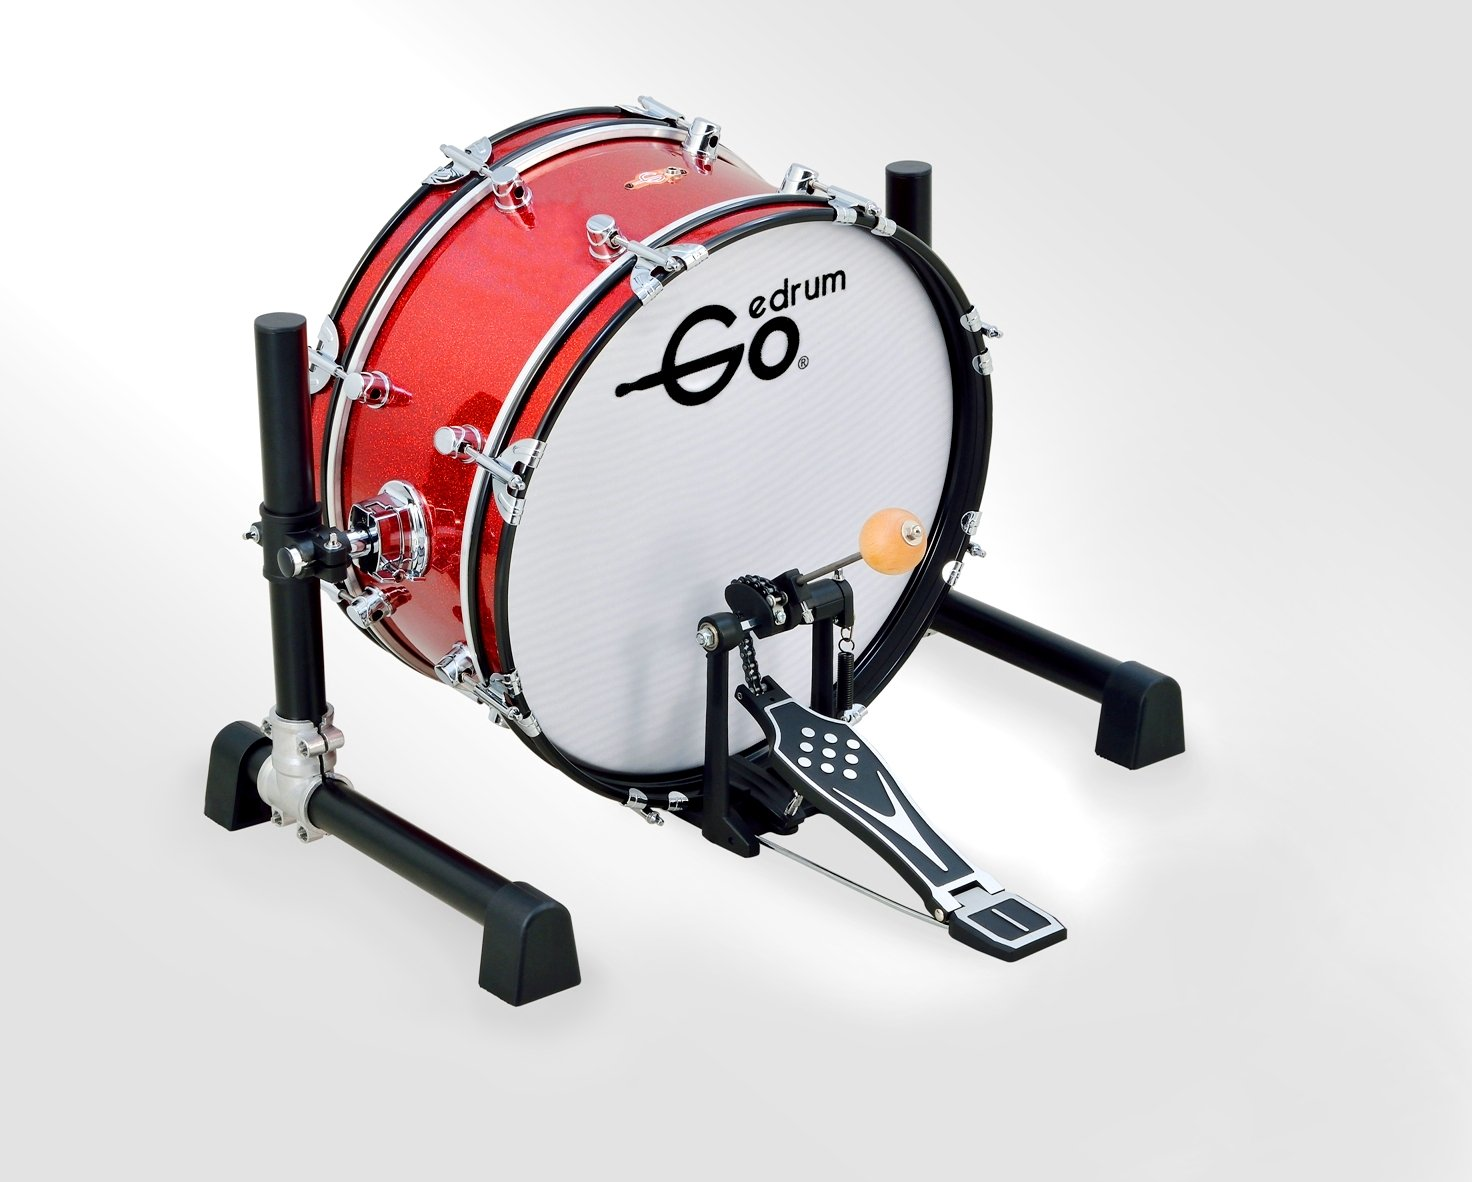 Goedrum GBD18 18 inch Electric Kick Drum or Electronic Bass Drum Color Red